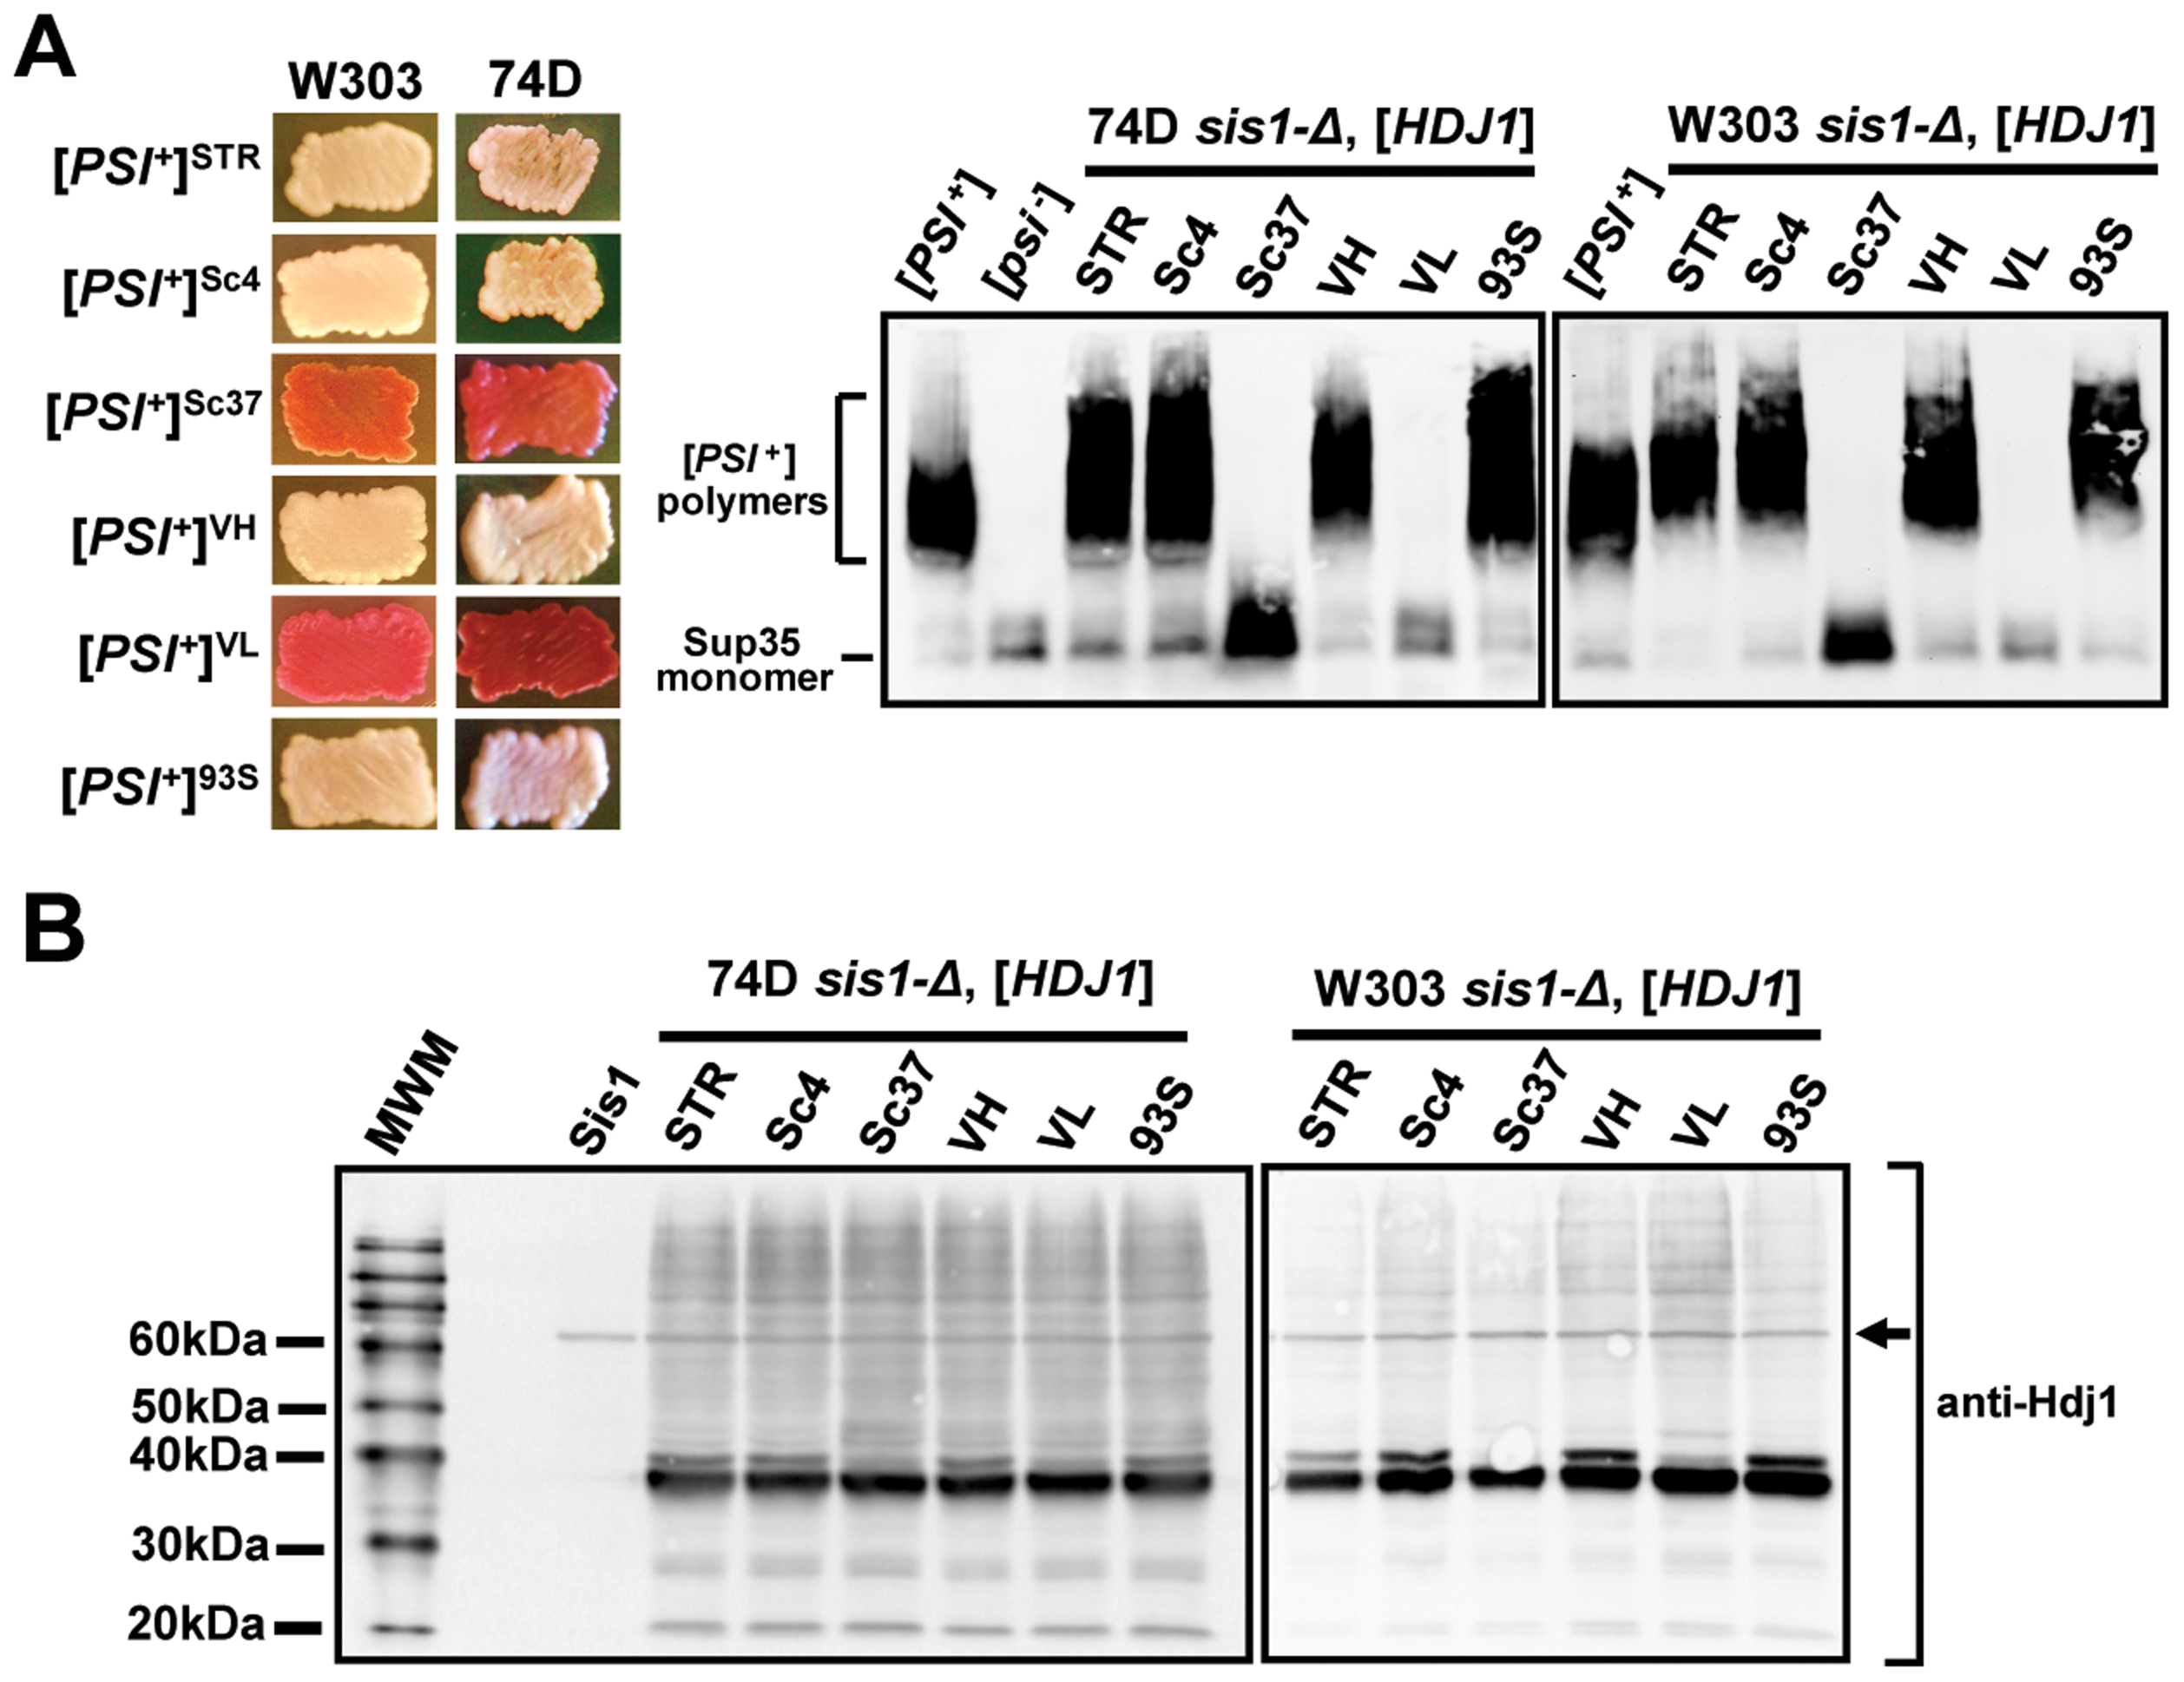 Hdj1, the human homolog of Sis1, maintains strong but not weak [<i>PSI<sup>+</sup></i>] variants in two yeast genetic backgrounds.